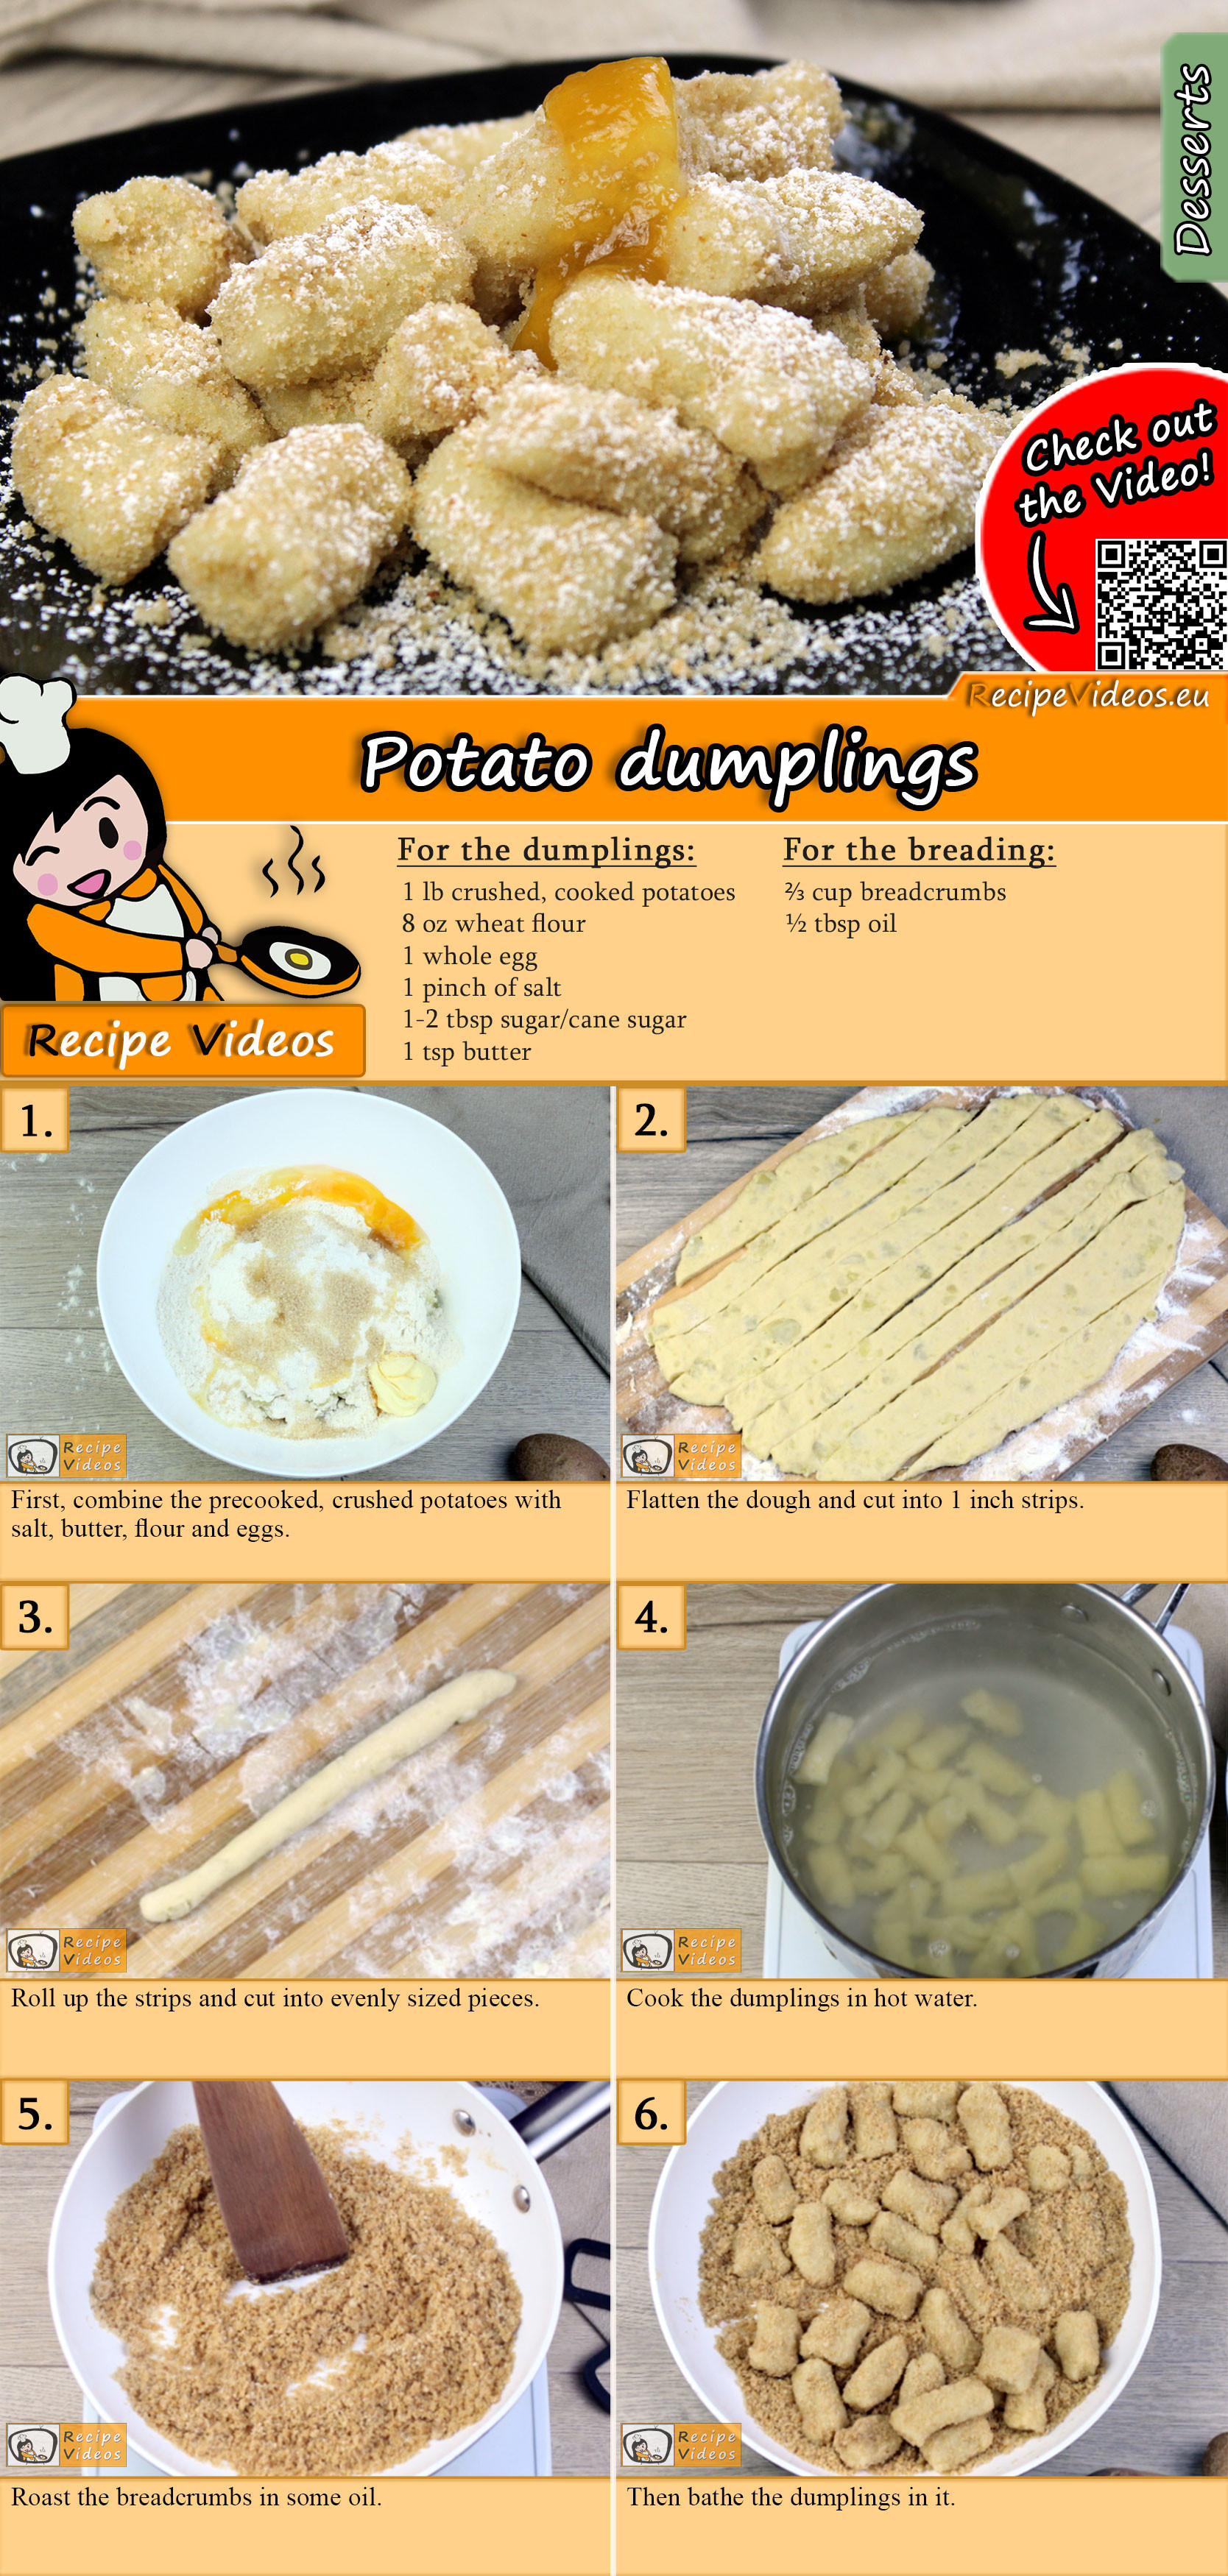 Potato dumplings recipe with video